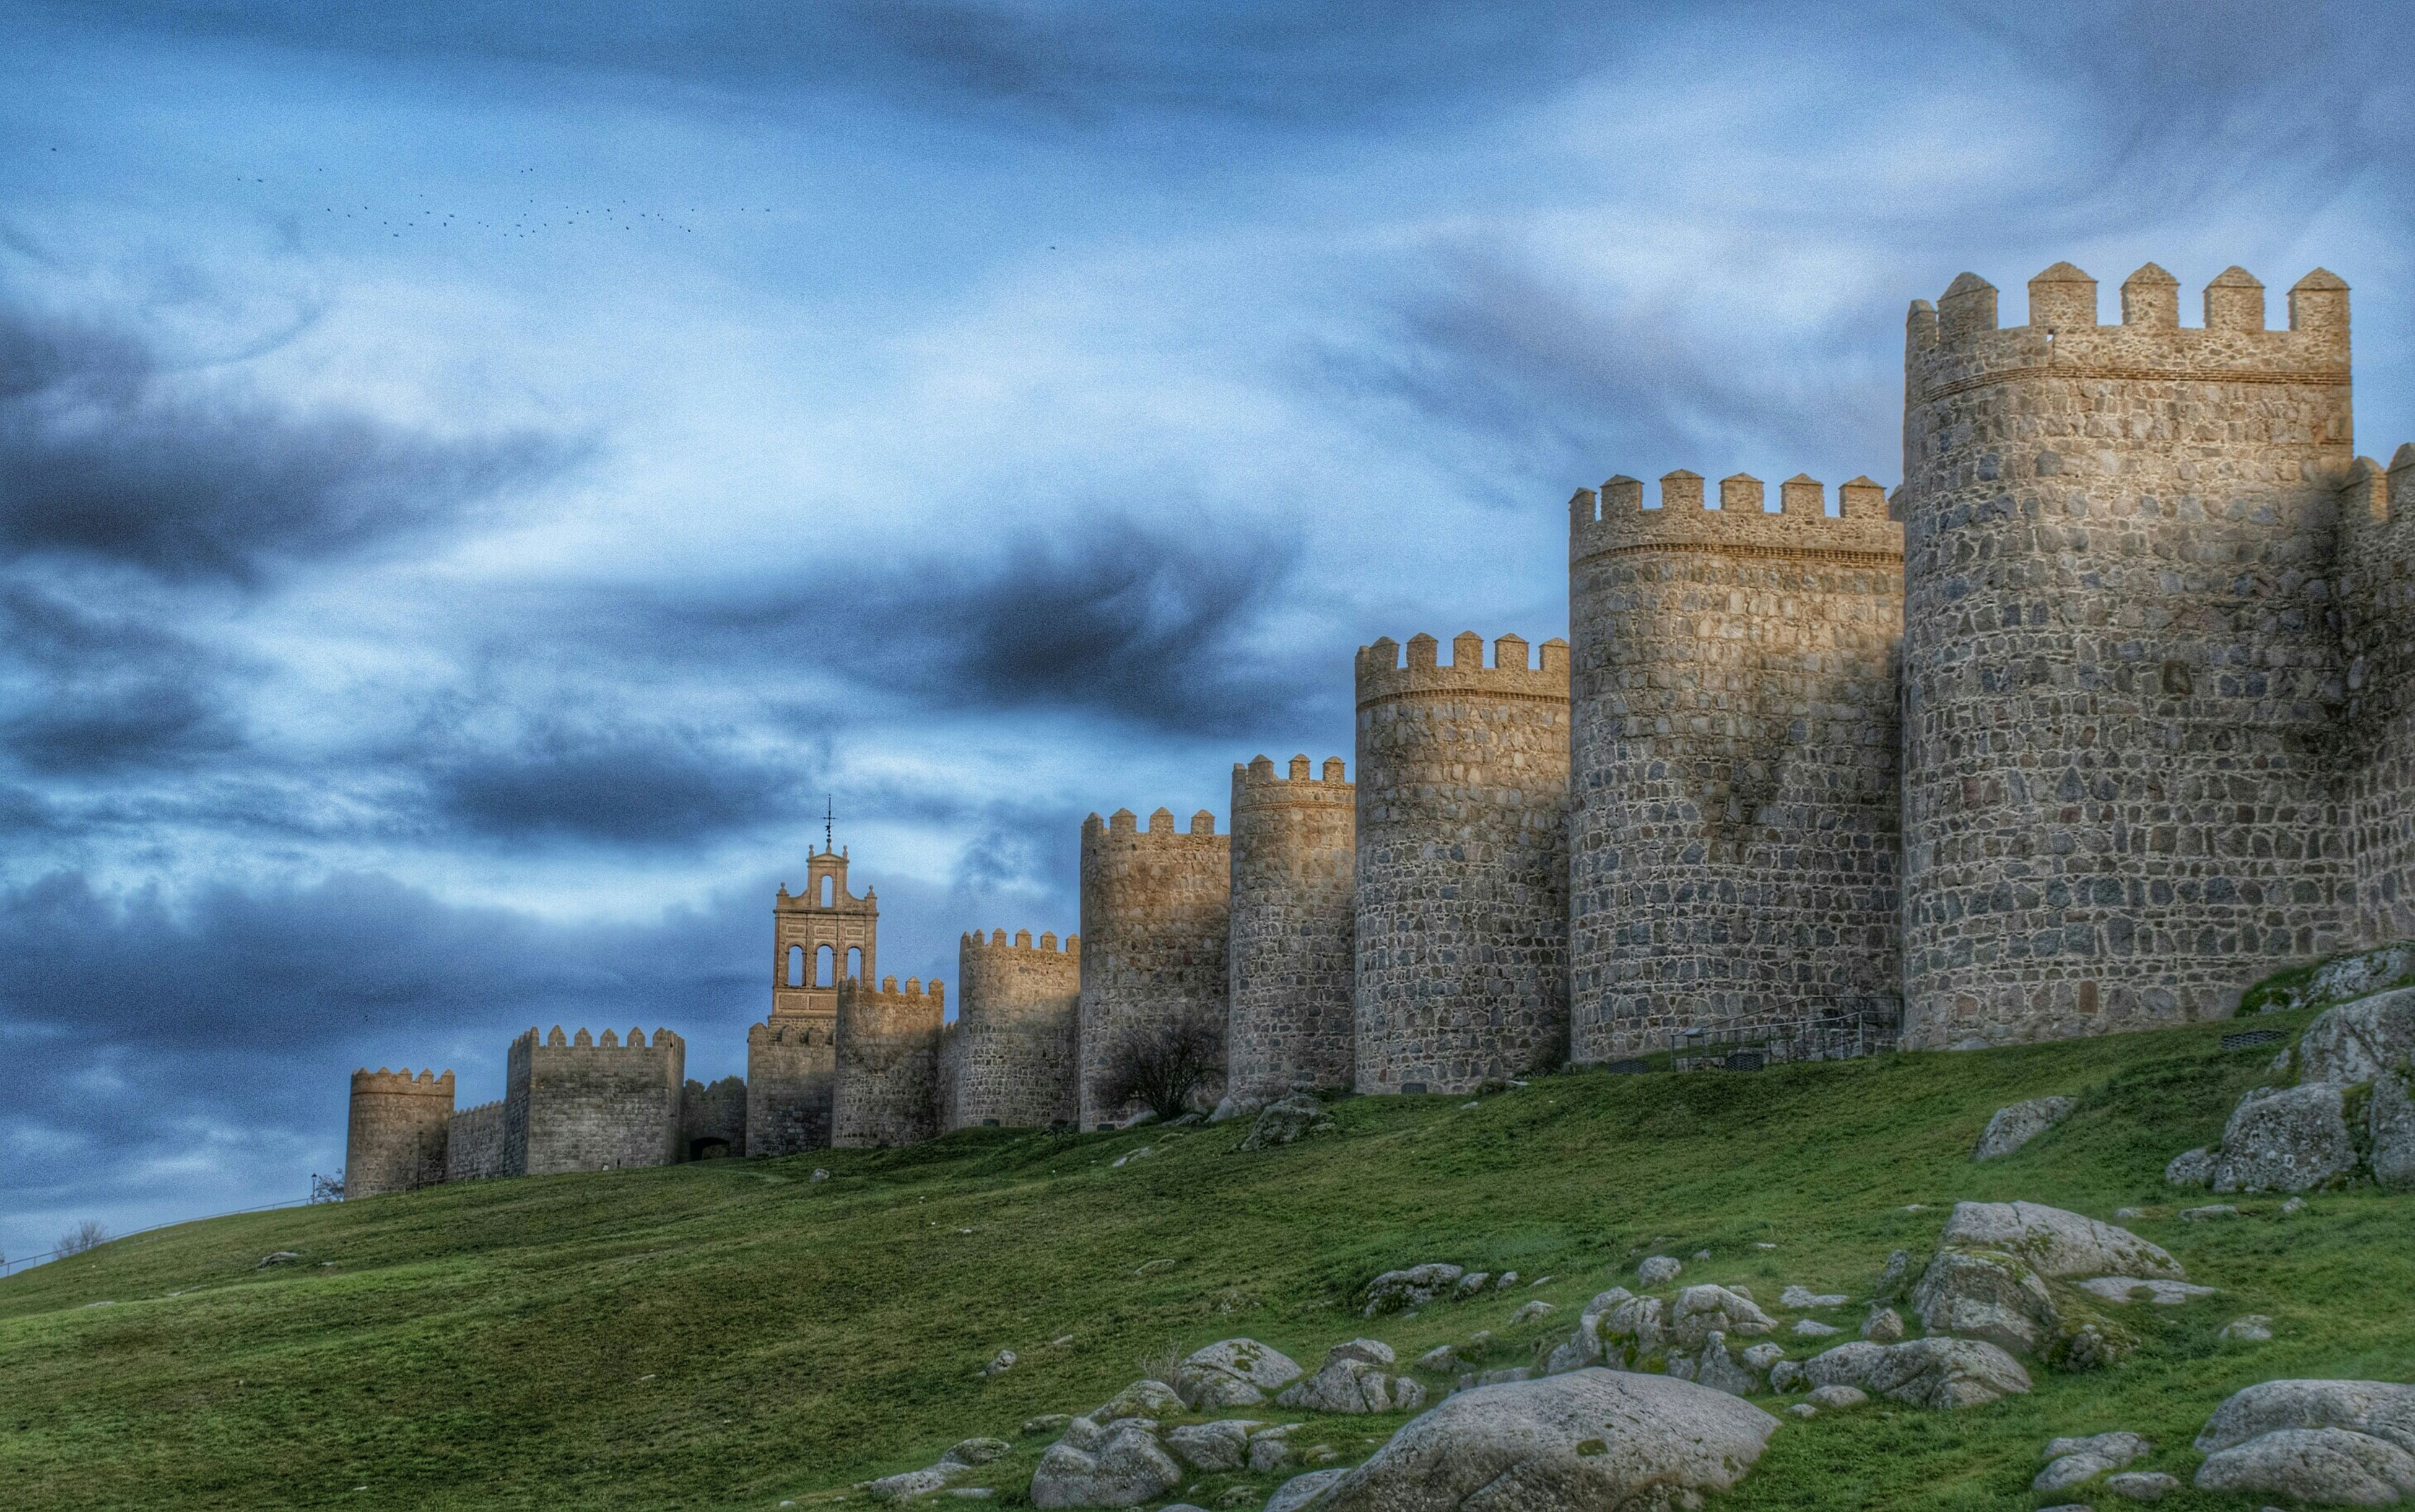 architecture, built structure, building exterior, sky, cloud - sky, history, old ruin, cloudy, the past, grass, old, stone wall, ancient, cloud, castle, tower, ruined, low angle view, day, travel destinations